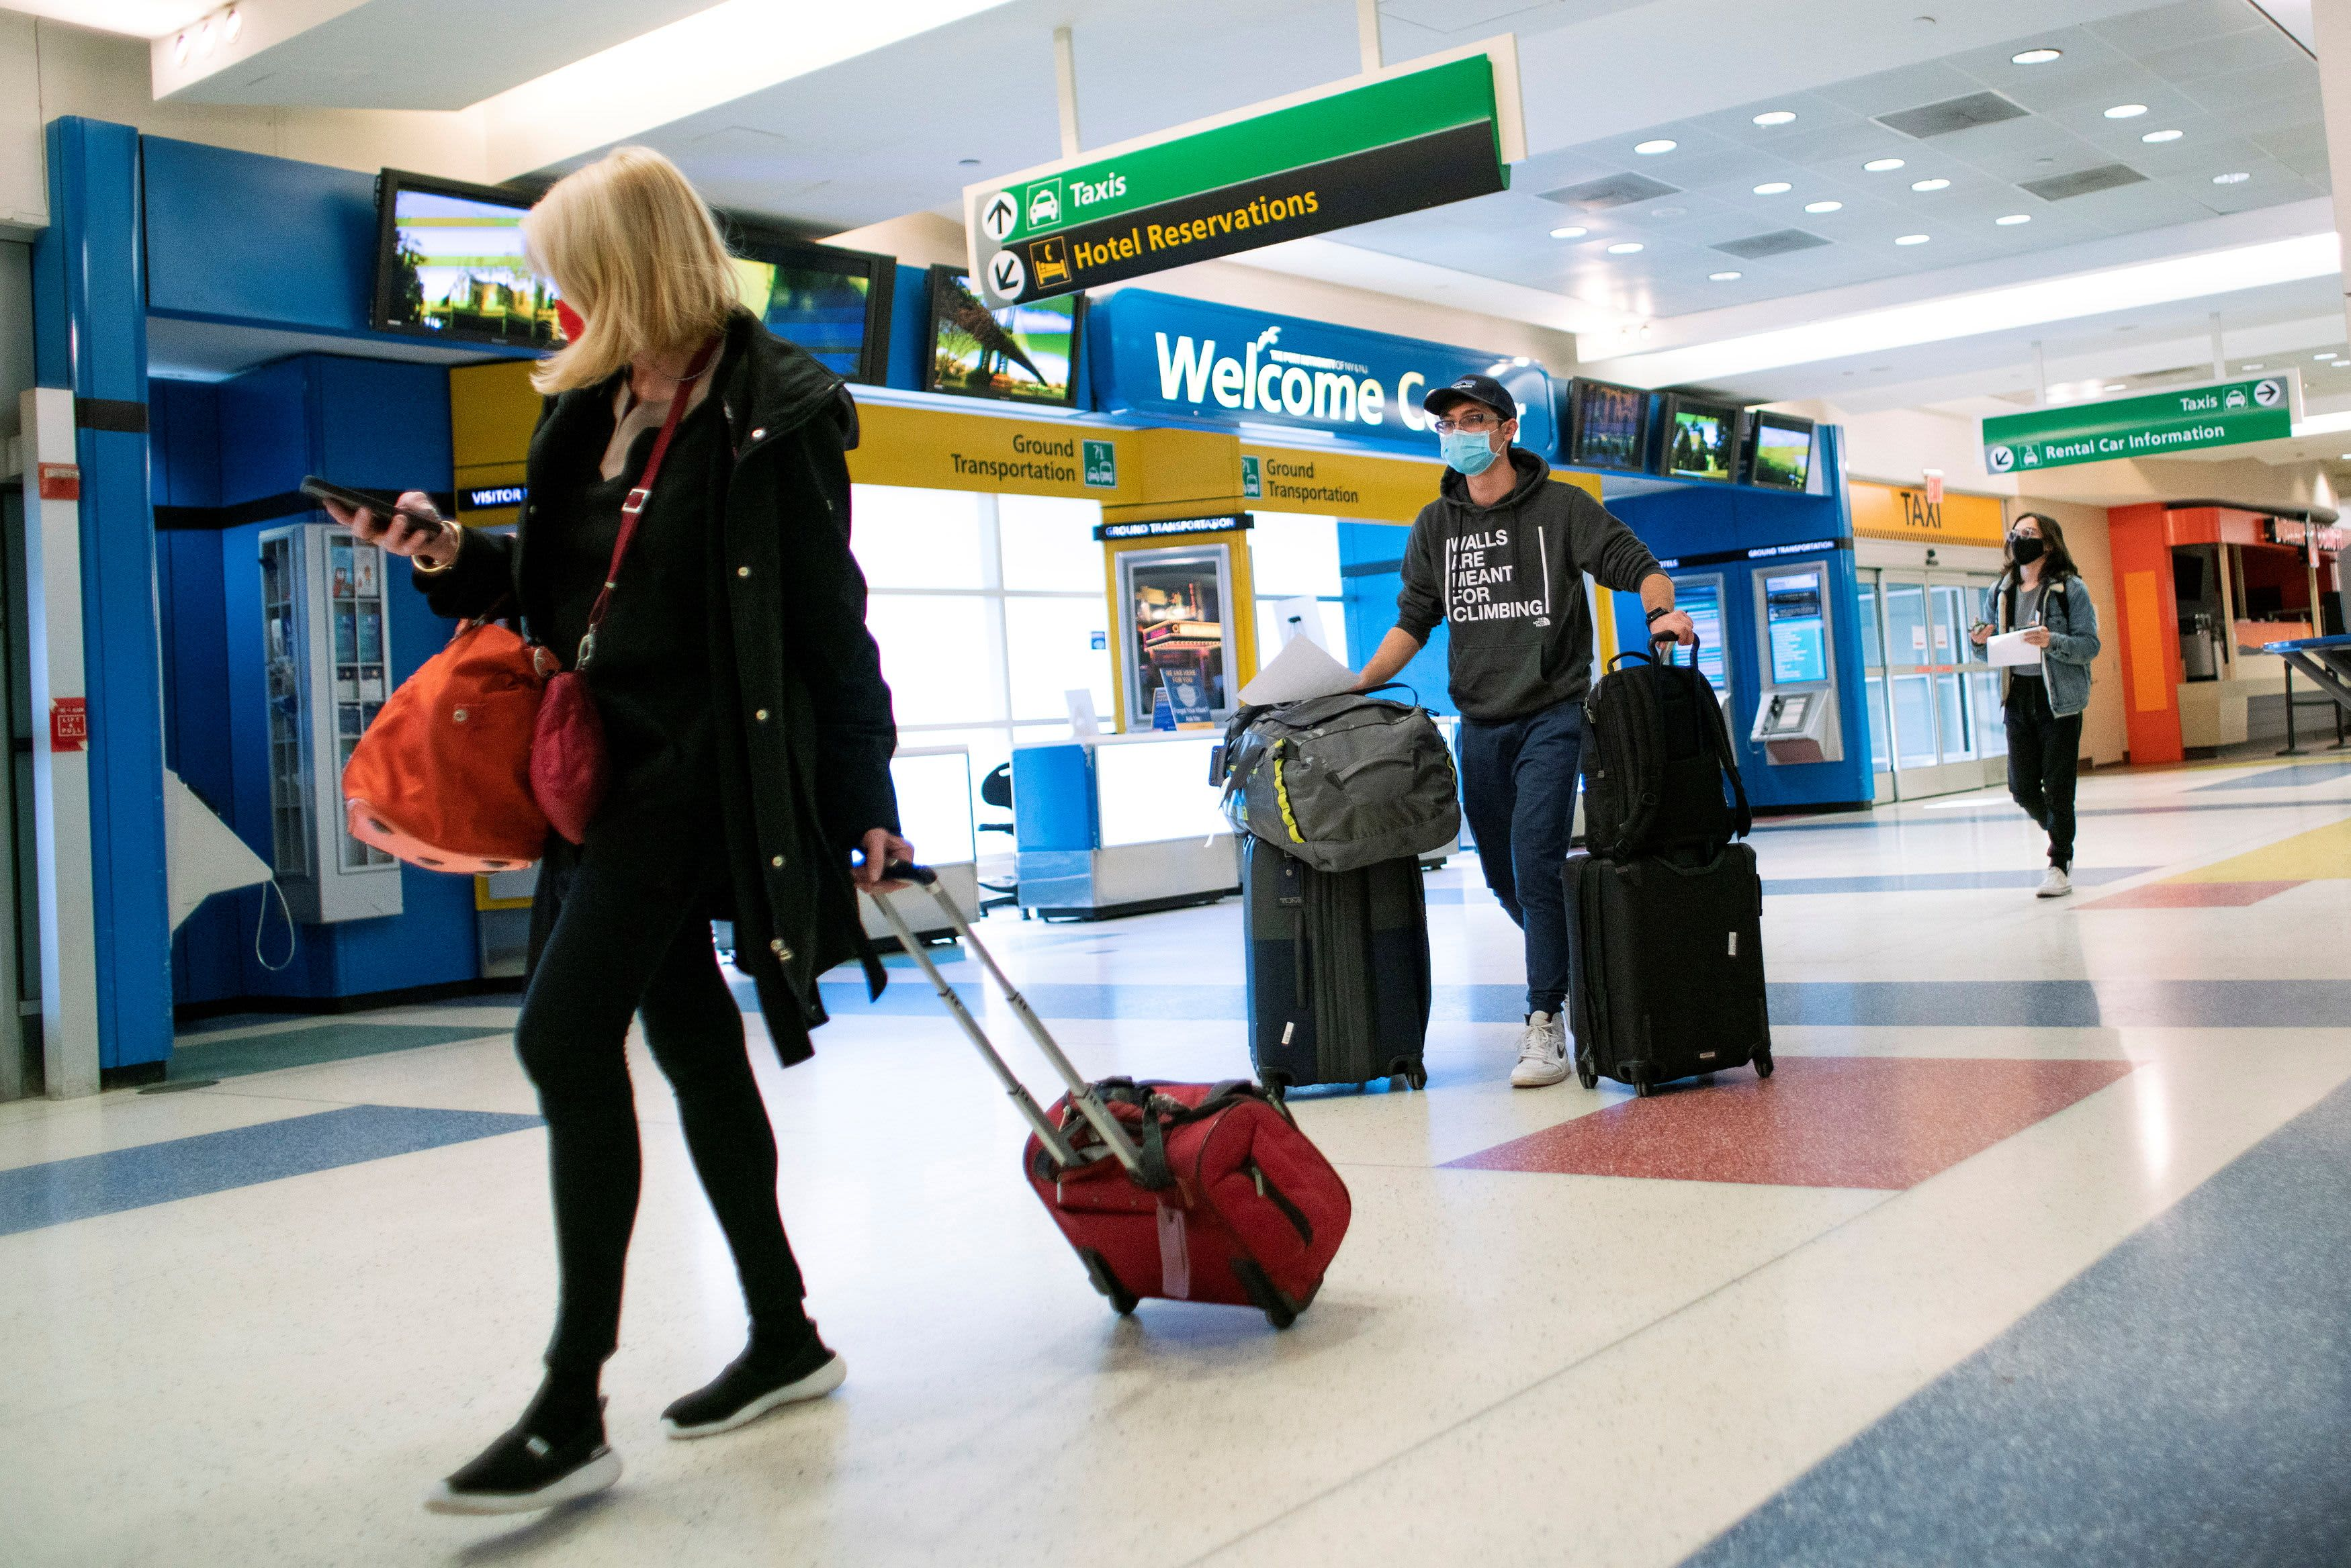 US will require negative Covid tests for inbound international air travel